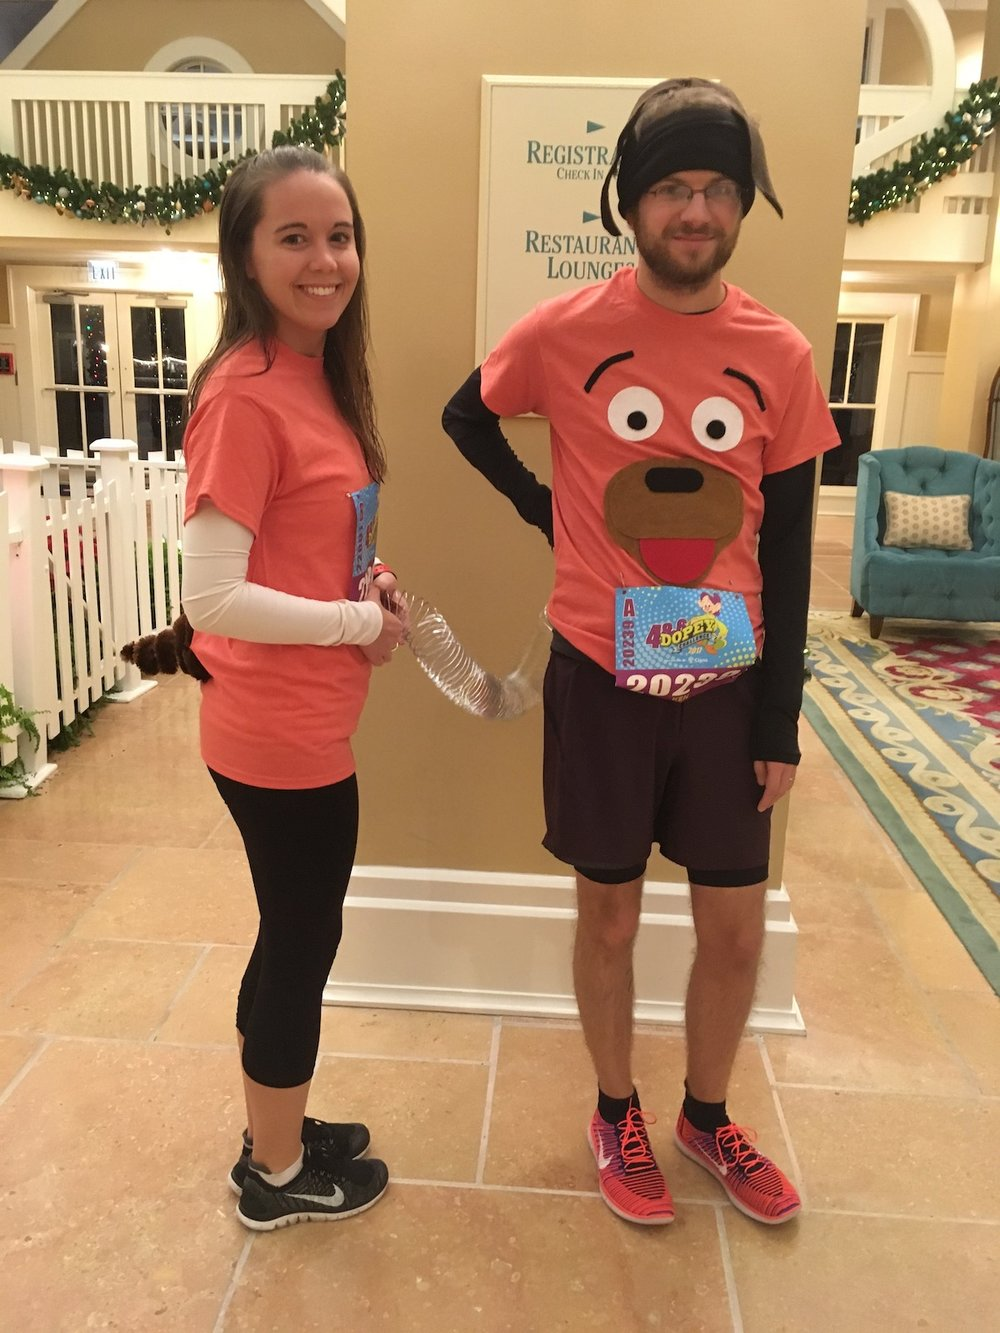 rundisney+disney+world+half+marathon+costume+3